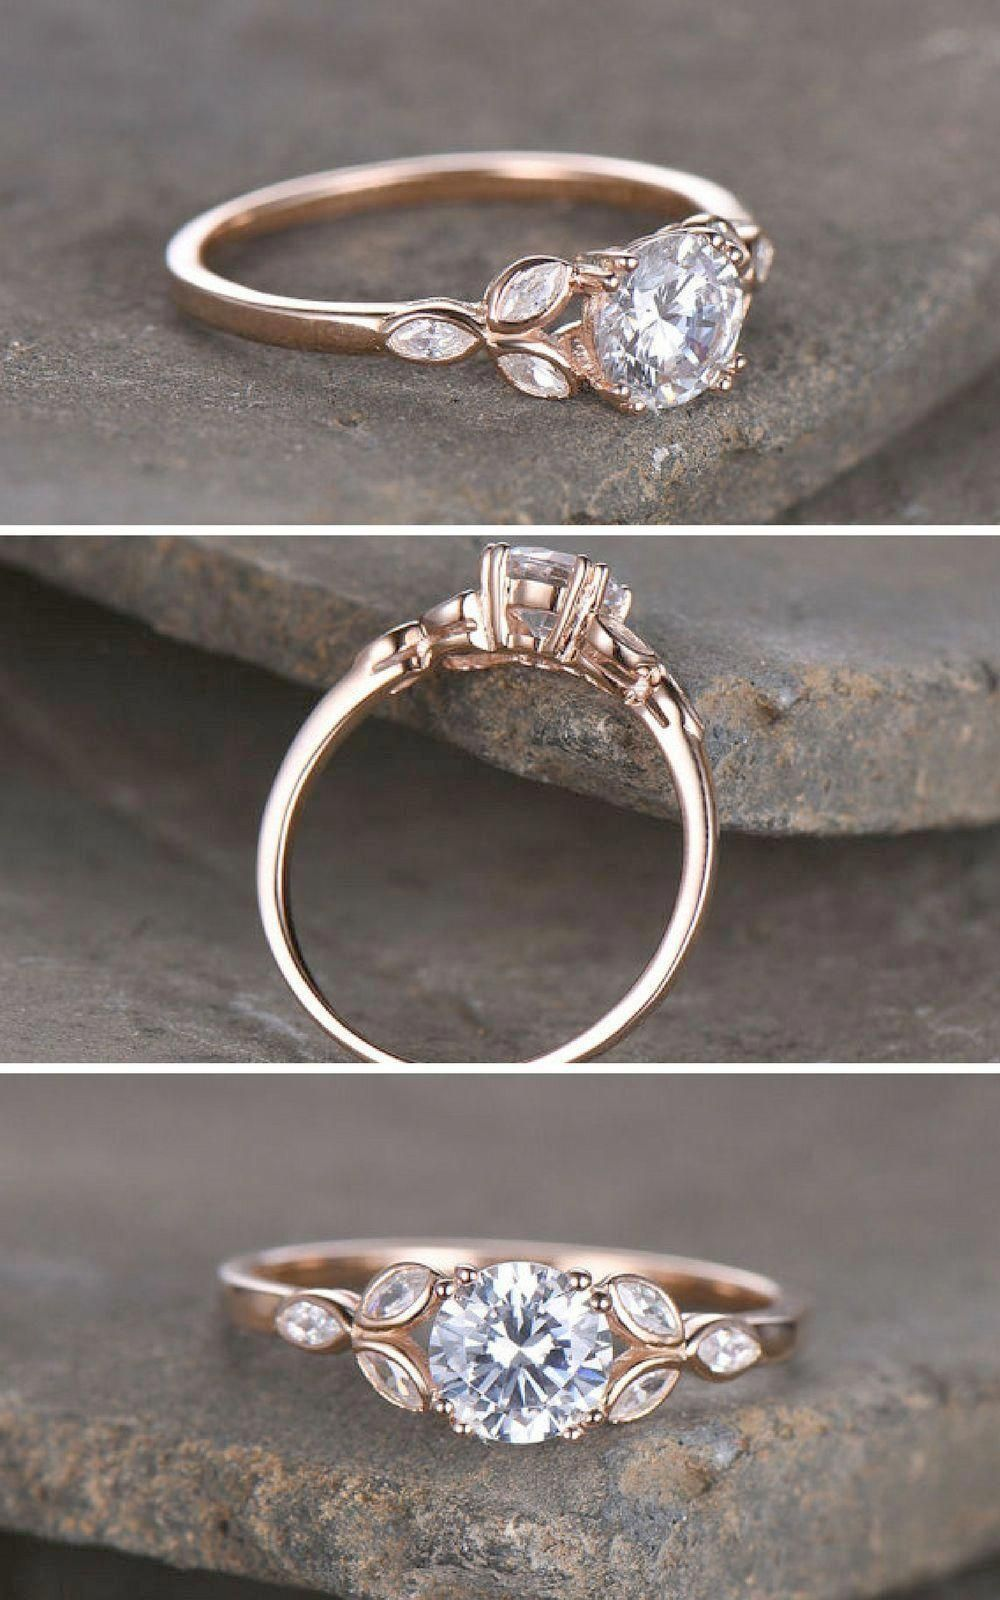 Rose Gold Promise Rings For Sale Gold Promise Rings For Her Cheap Vintageweddingring Wedding Rings Vintage Wedding Rings Round Silver Engagement Rings